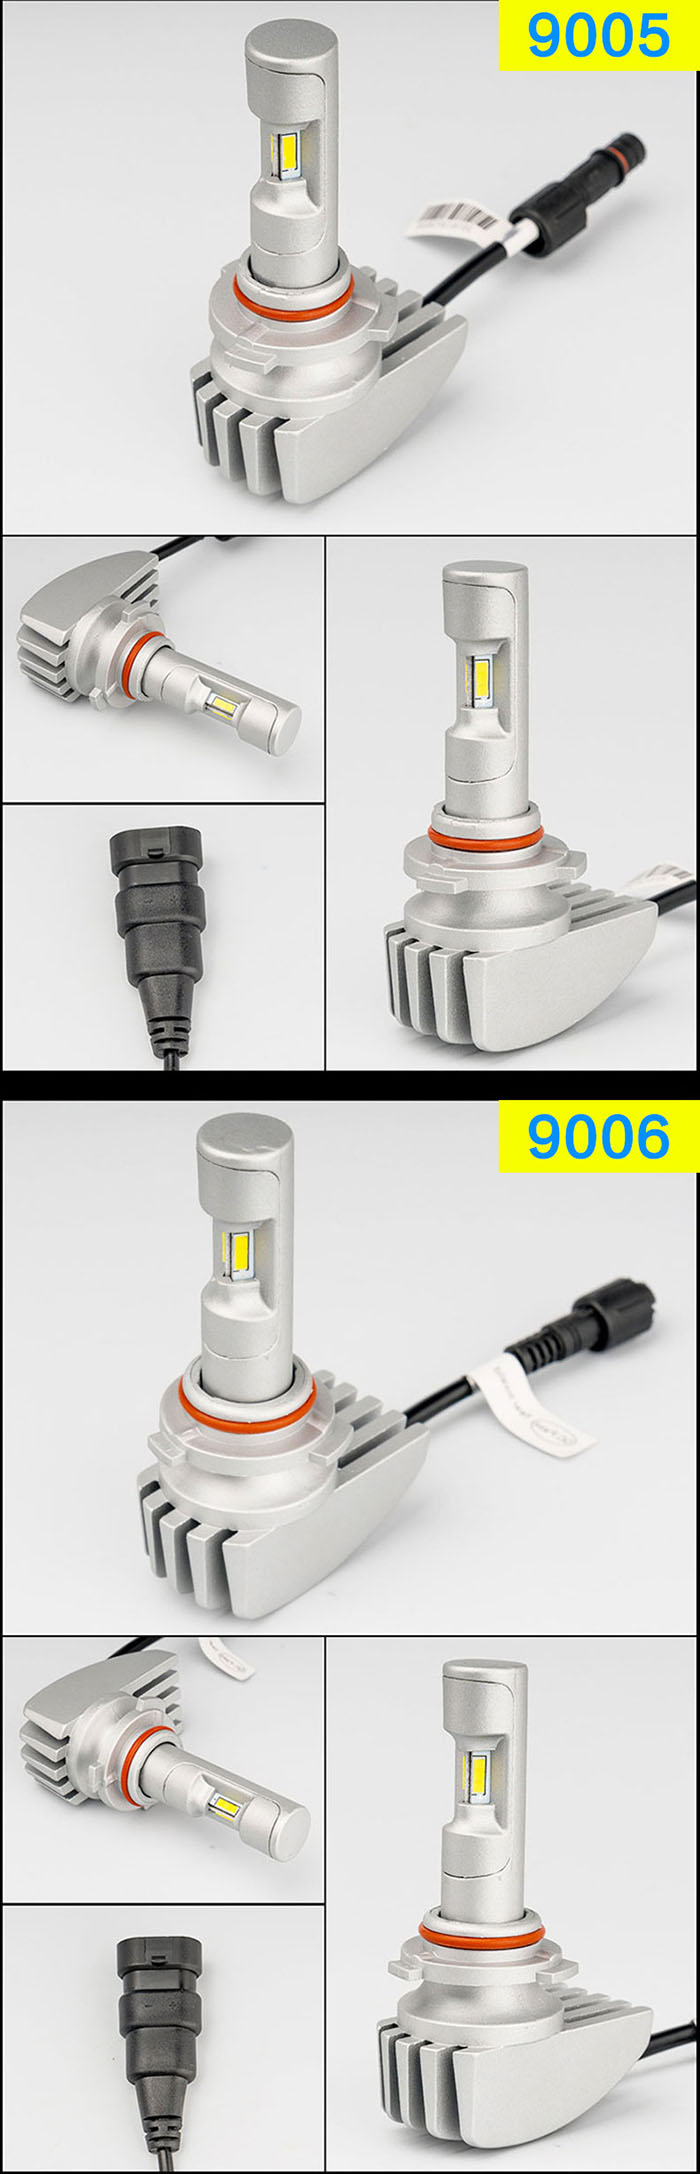 9005 9006 led headlight.jpg